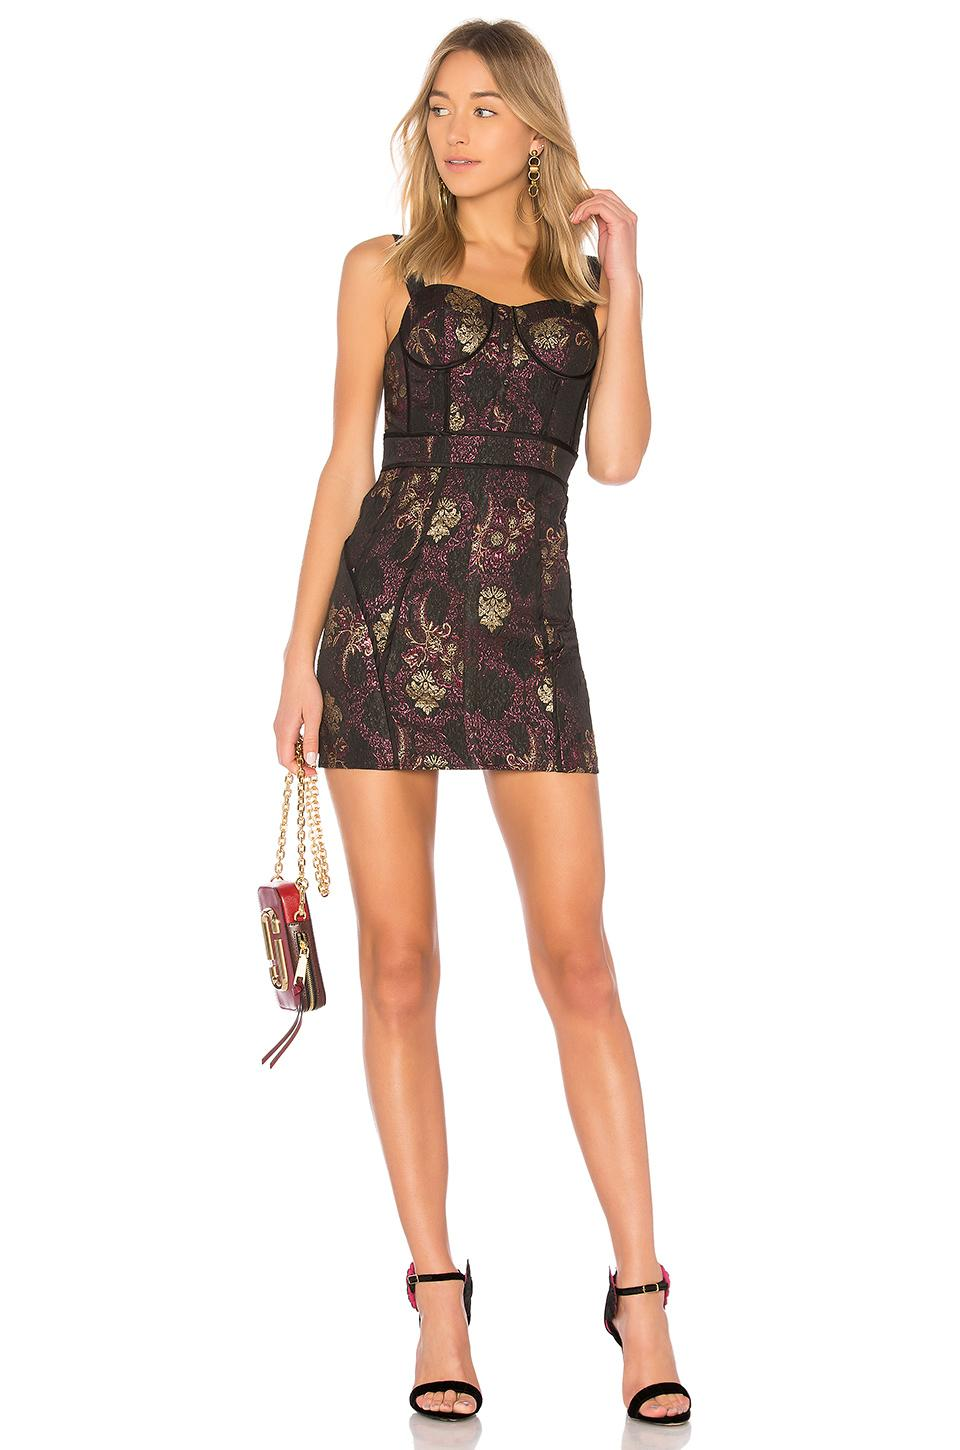 8788975e59c Lpa Dress 447 In Black. In Red Blend